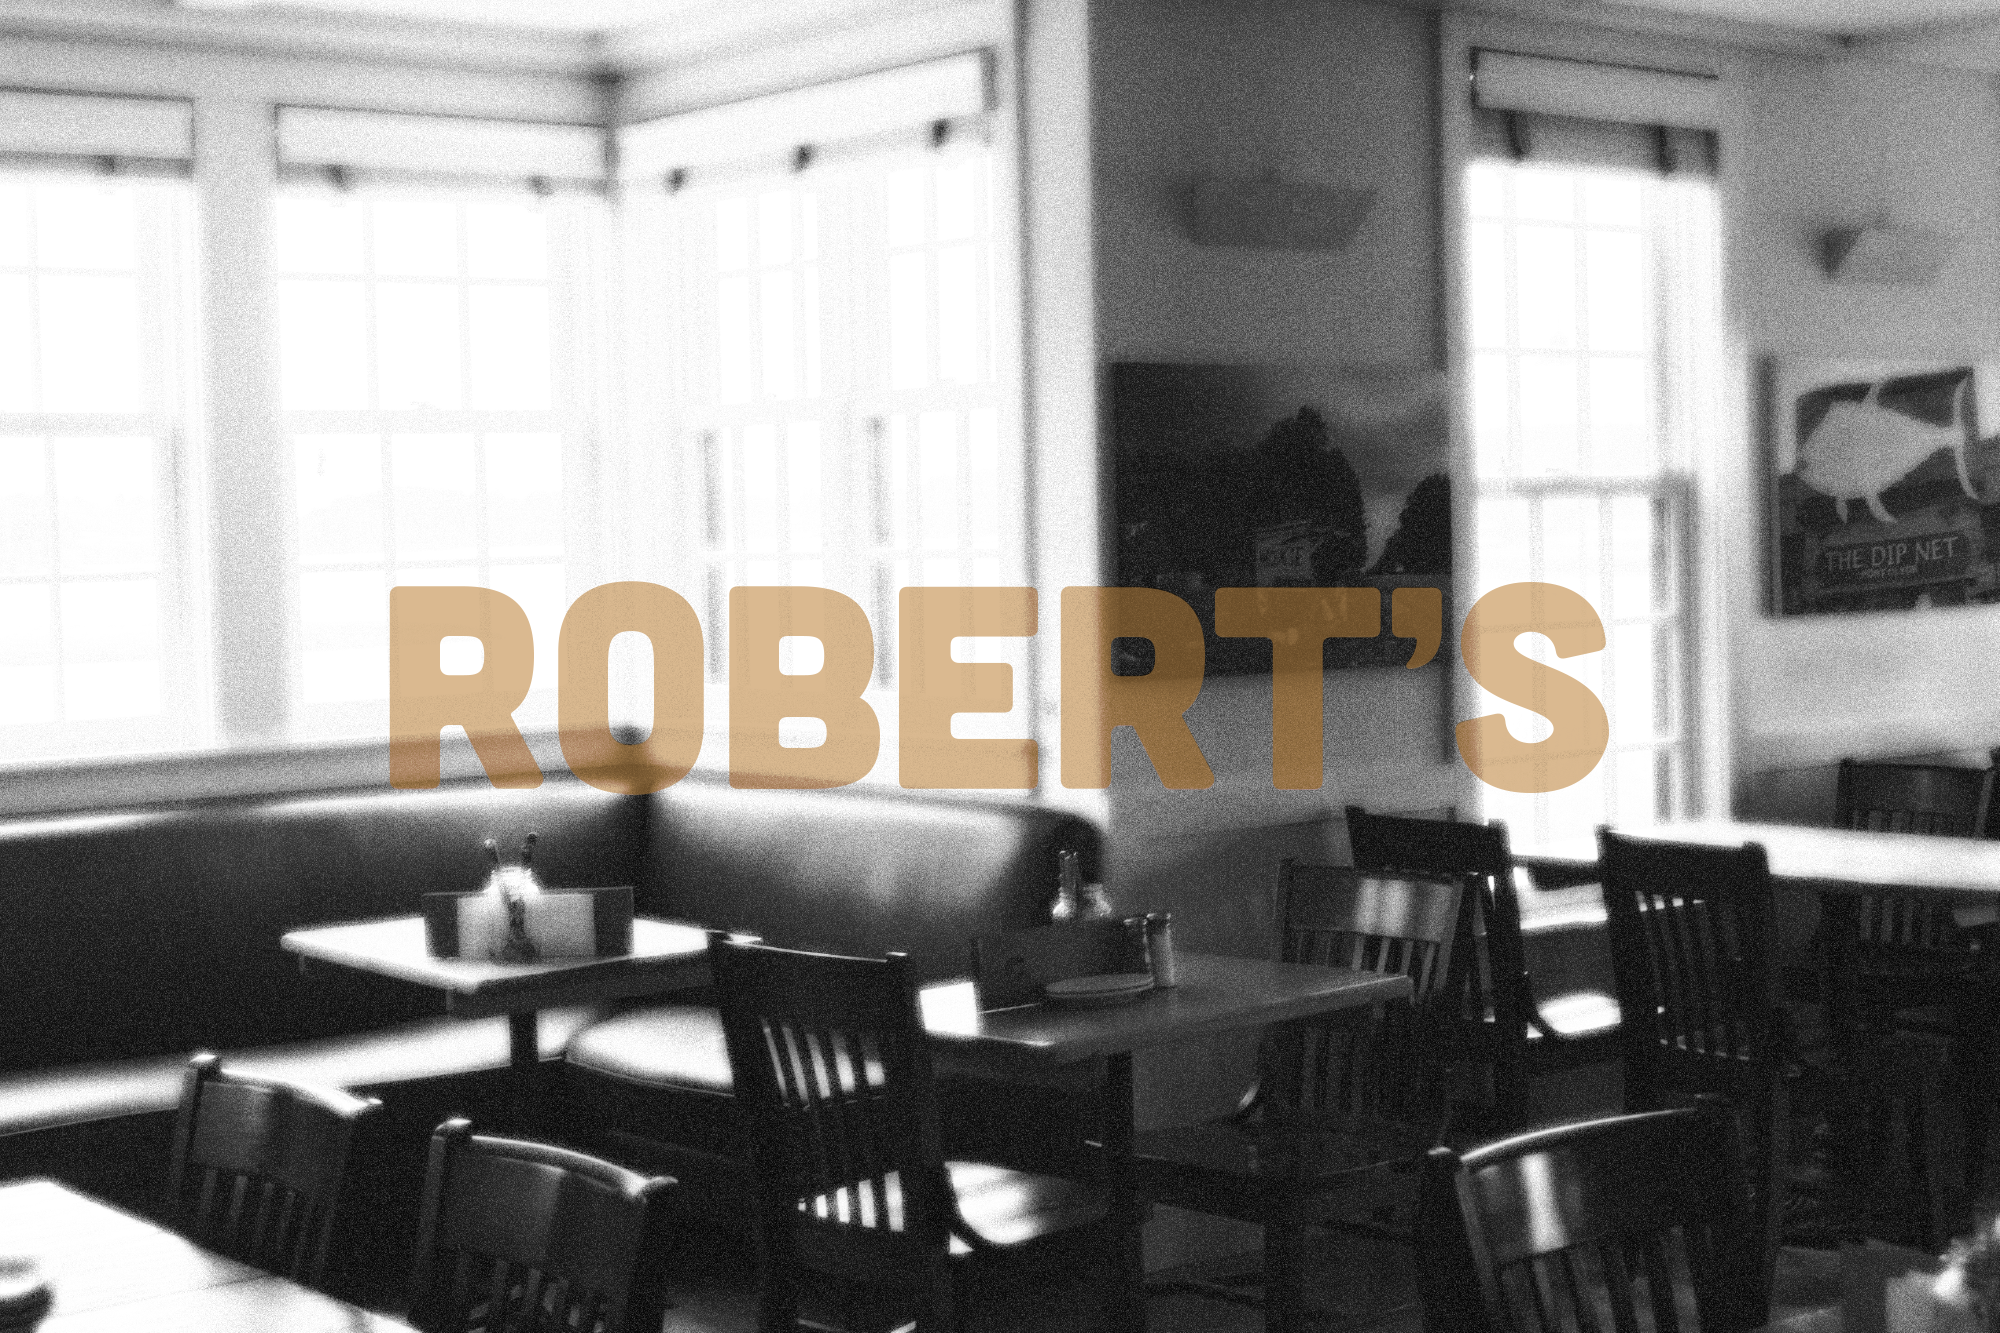 roberts cover 2.png